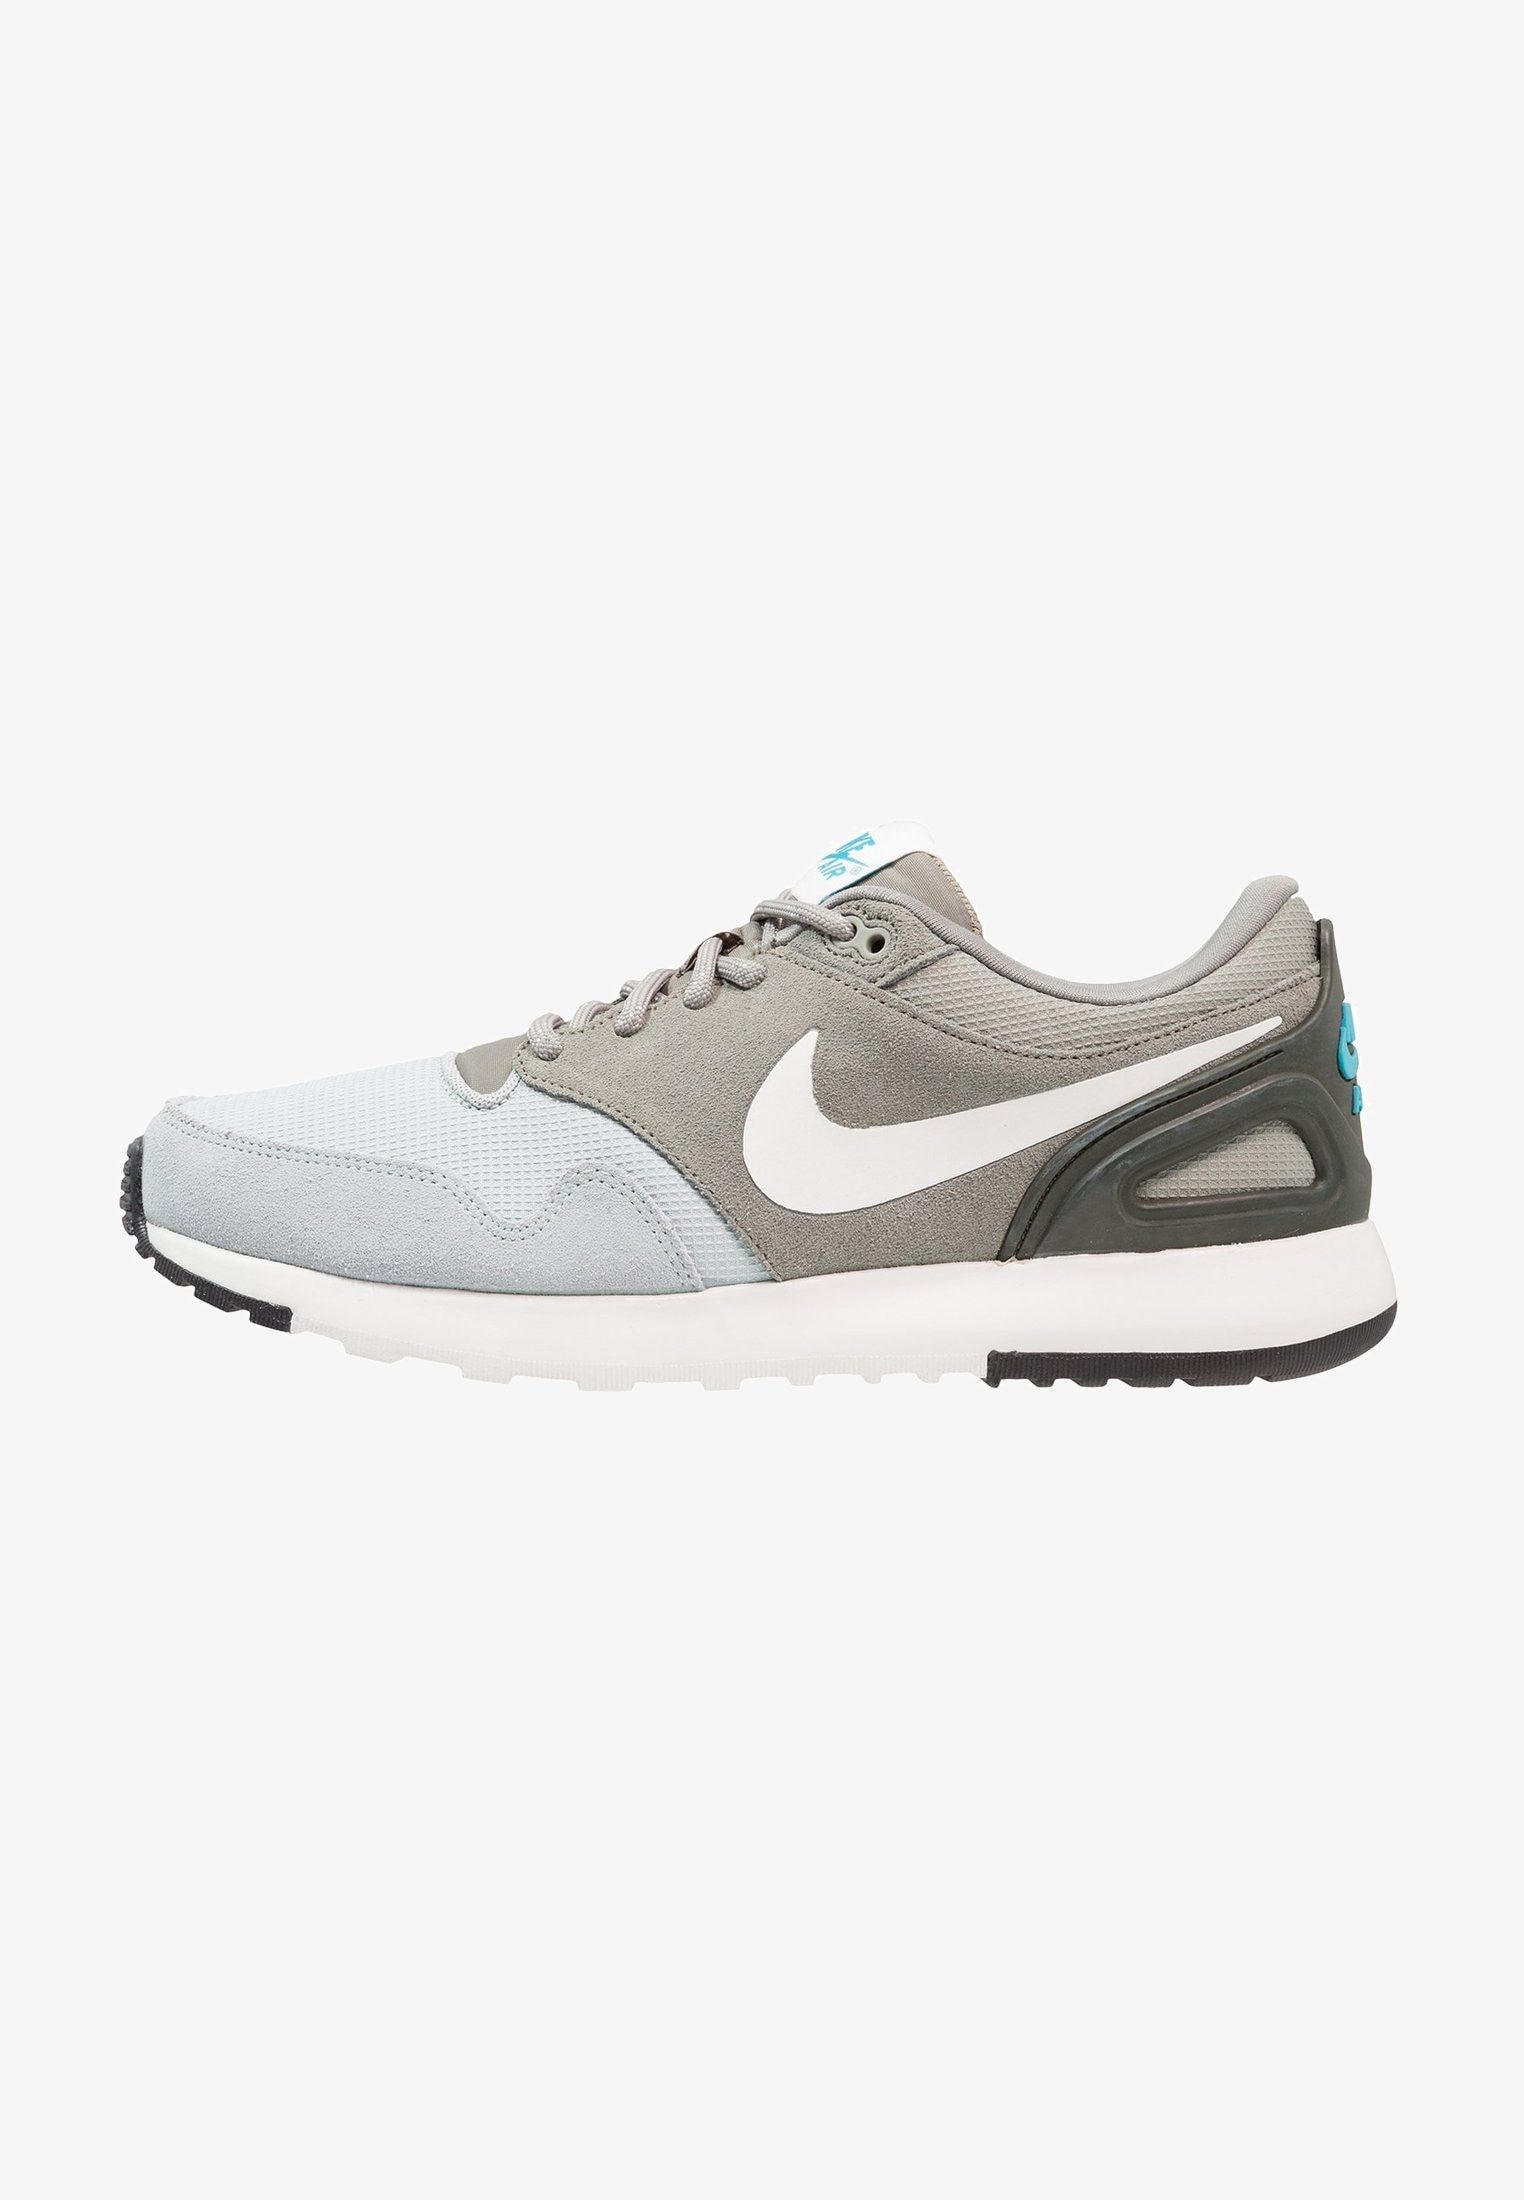 the latest f741e d46f9 Nike Sportswear AIR VIBENNA SE - Trainers - light pumice summit white dark  grey light blue fury sequoia - Zalando.co.uk